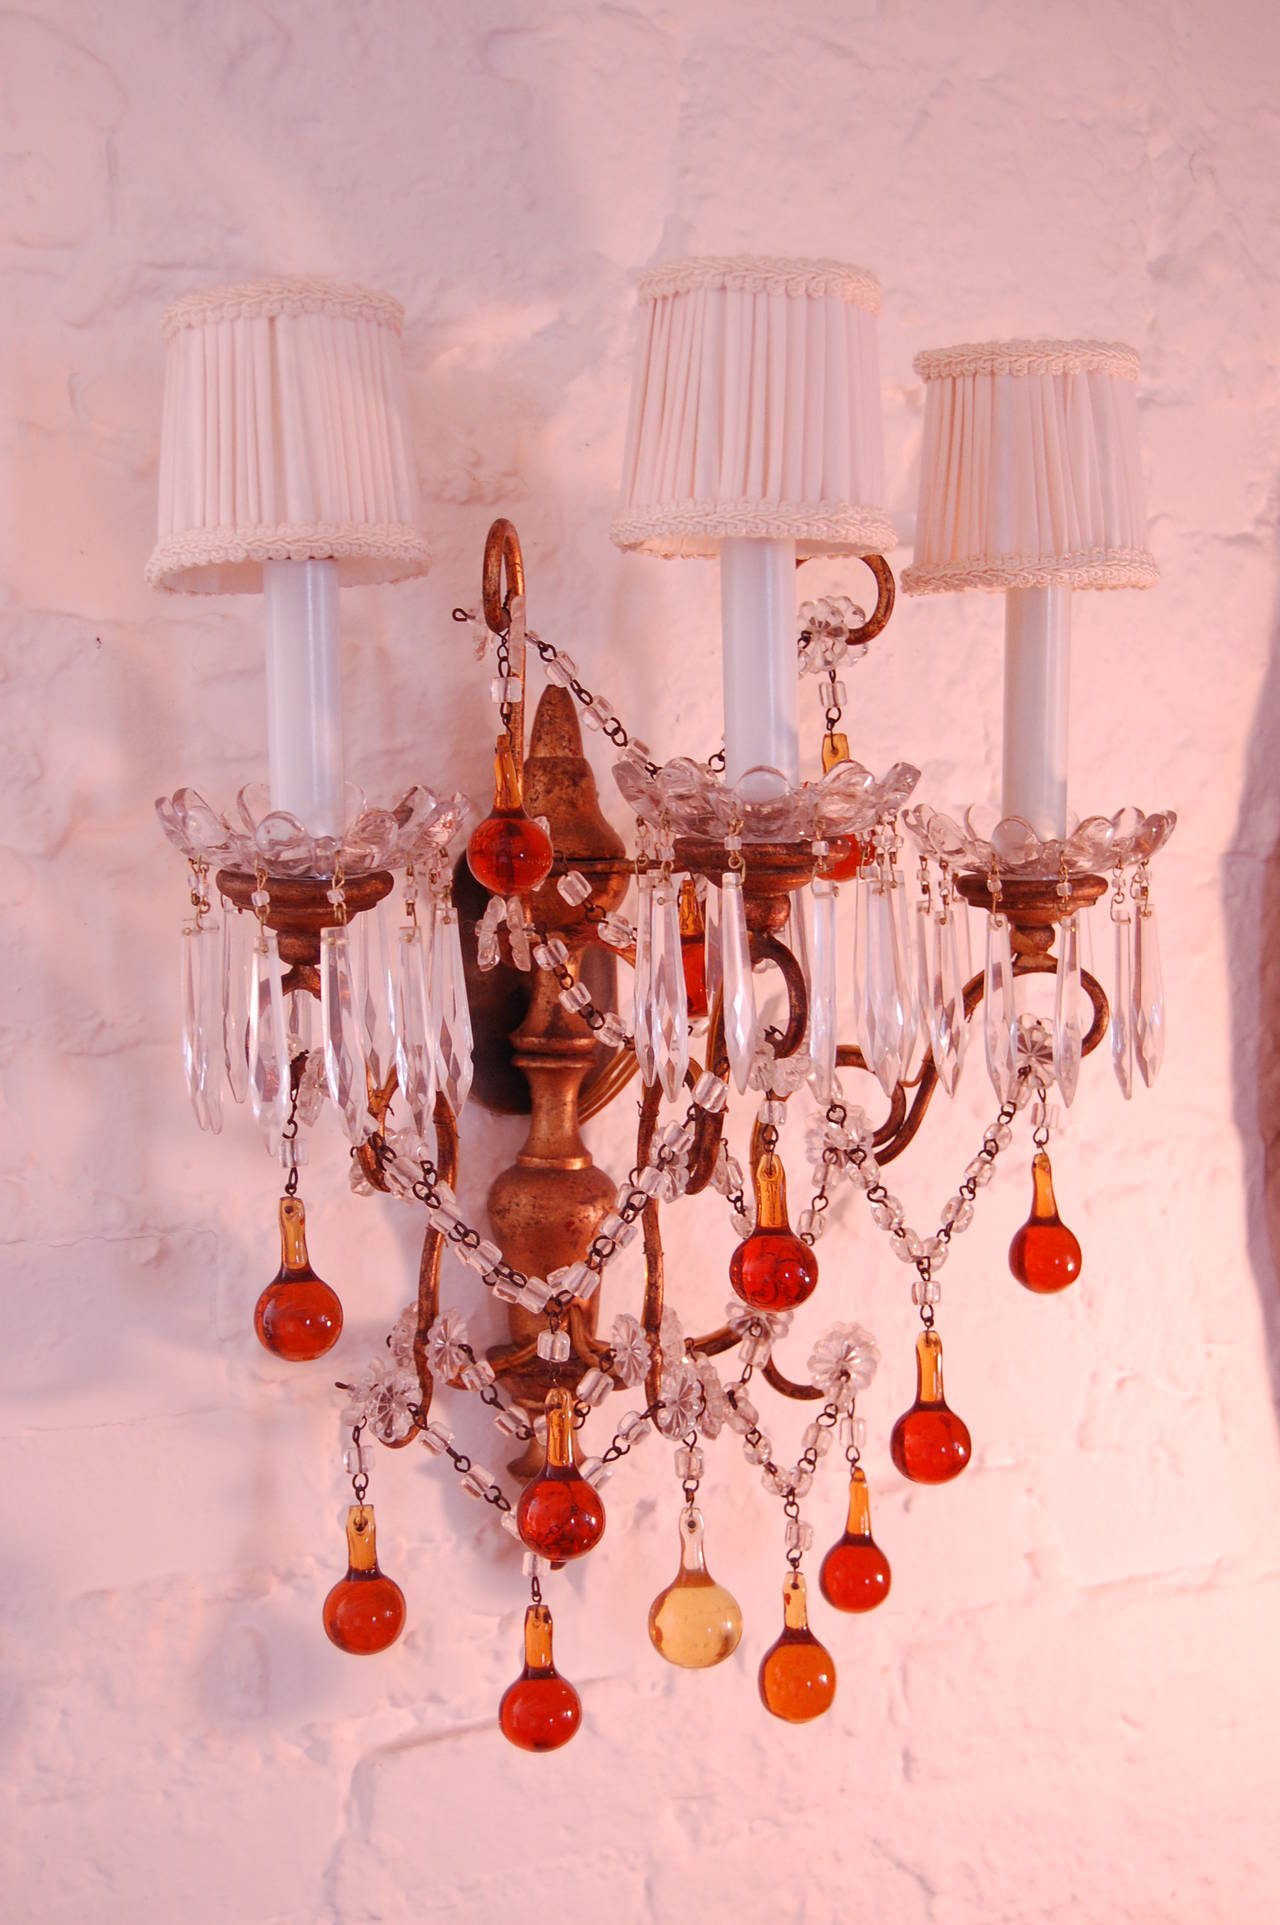 Pair of Italian Sconces with Amber and Clear Glass Beads circa 1920 For Sale at 1stdibs